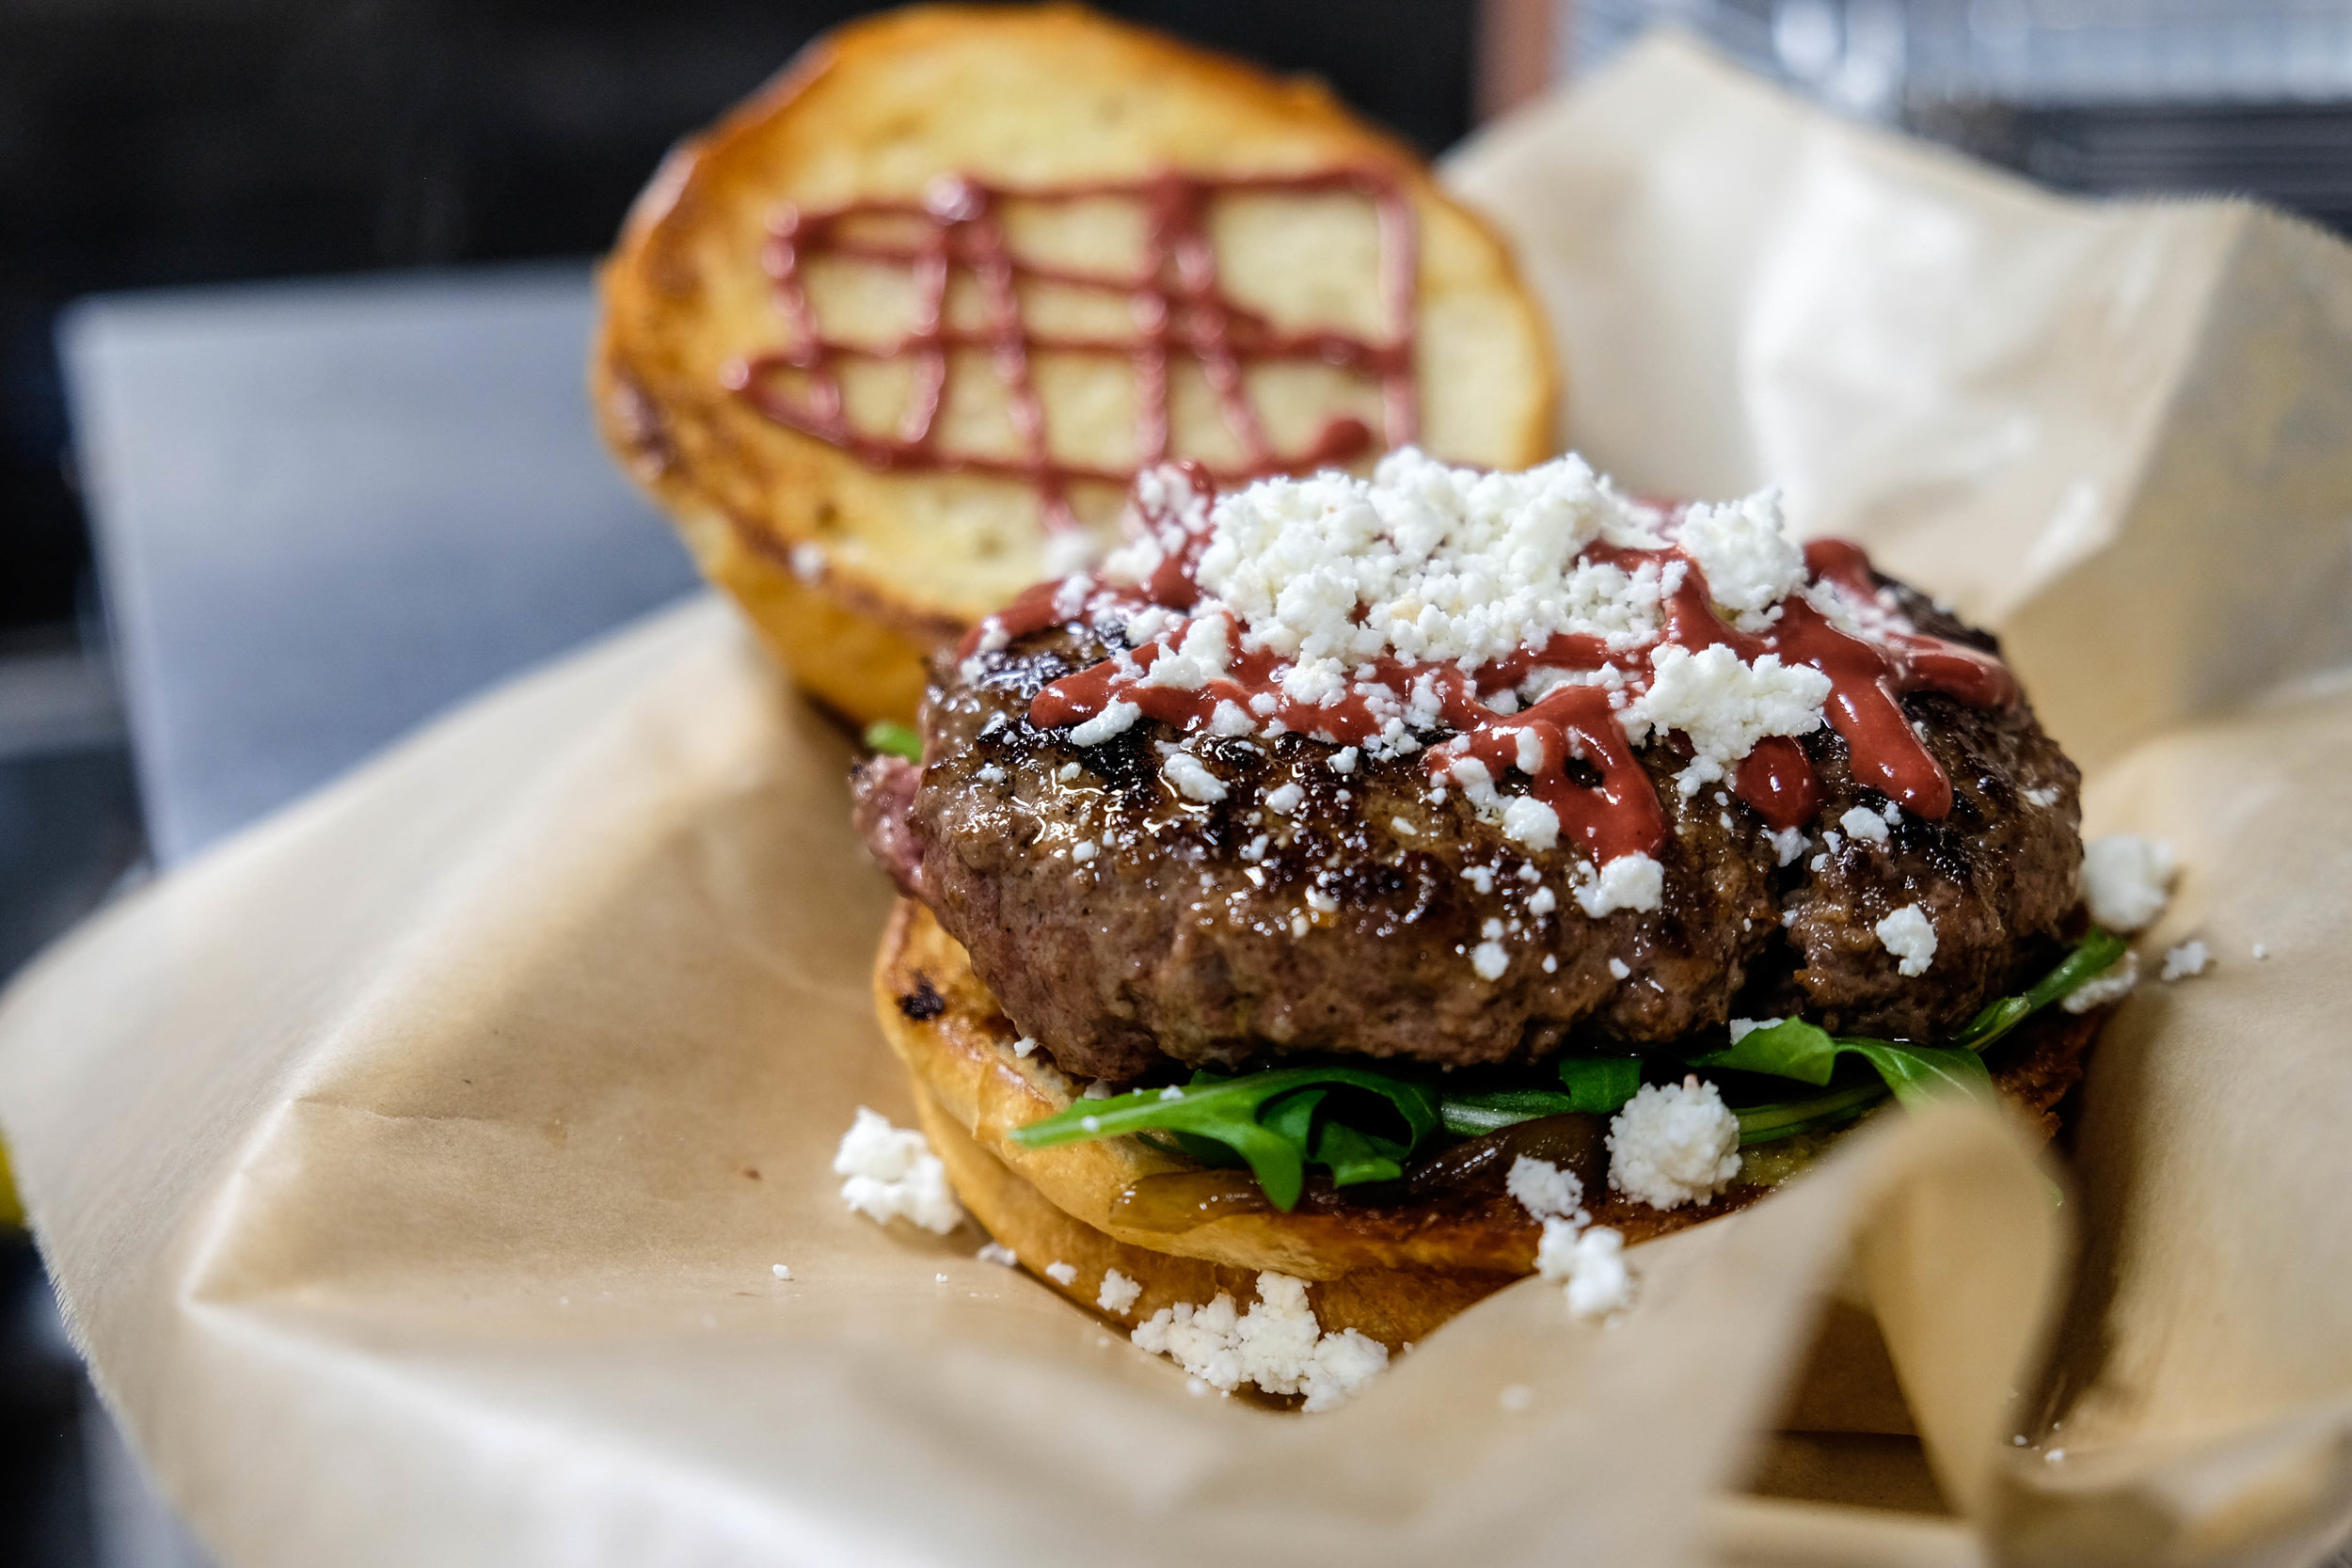 The Contemporary Burger. Beef patty, smoked chèvre, caramelized onion, arugula, beet dijon.